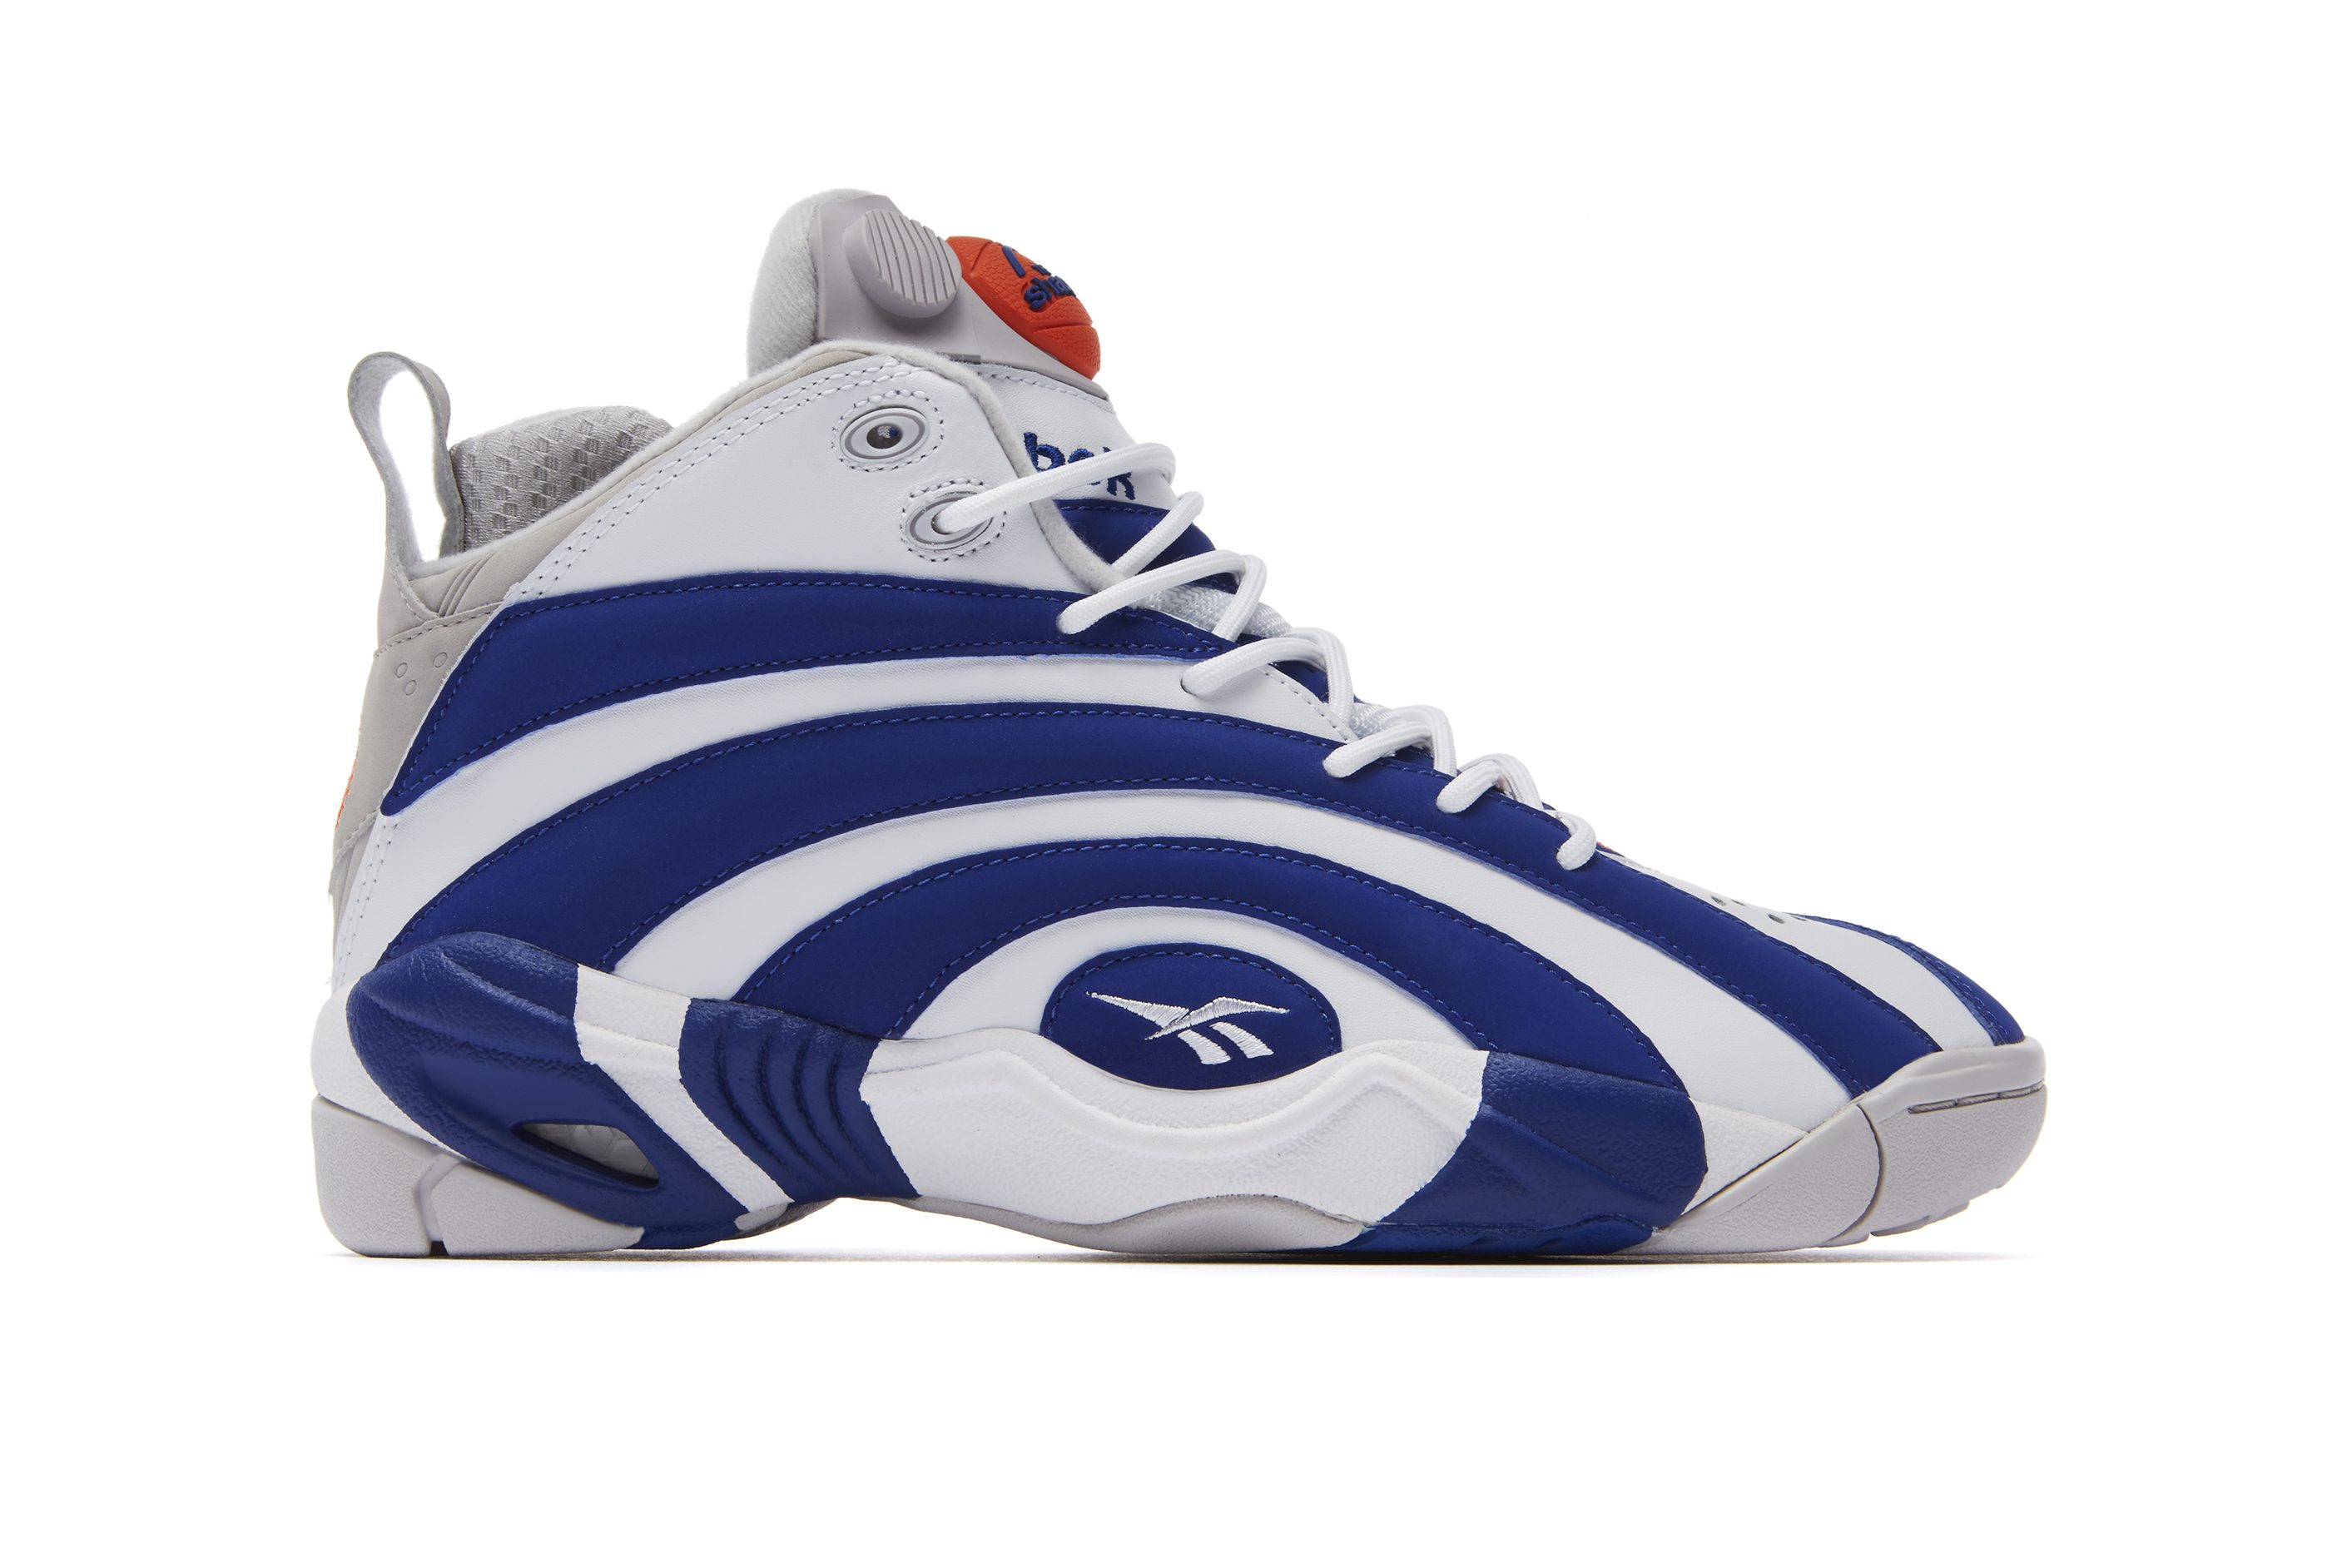 reebok pump it up shoes